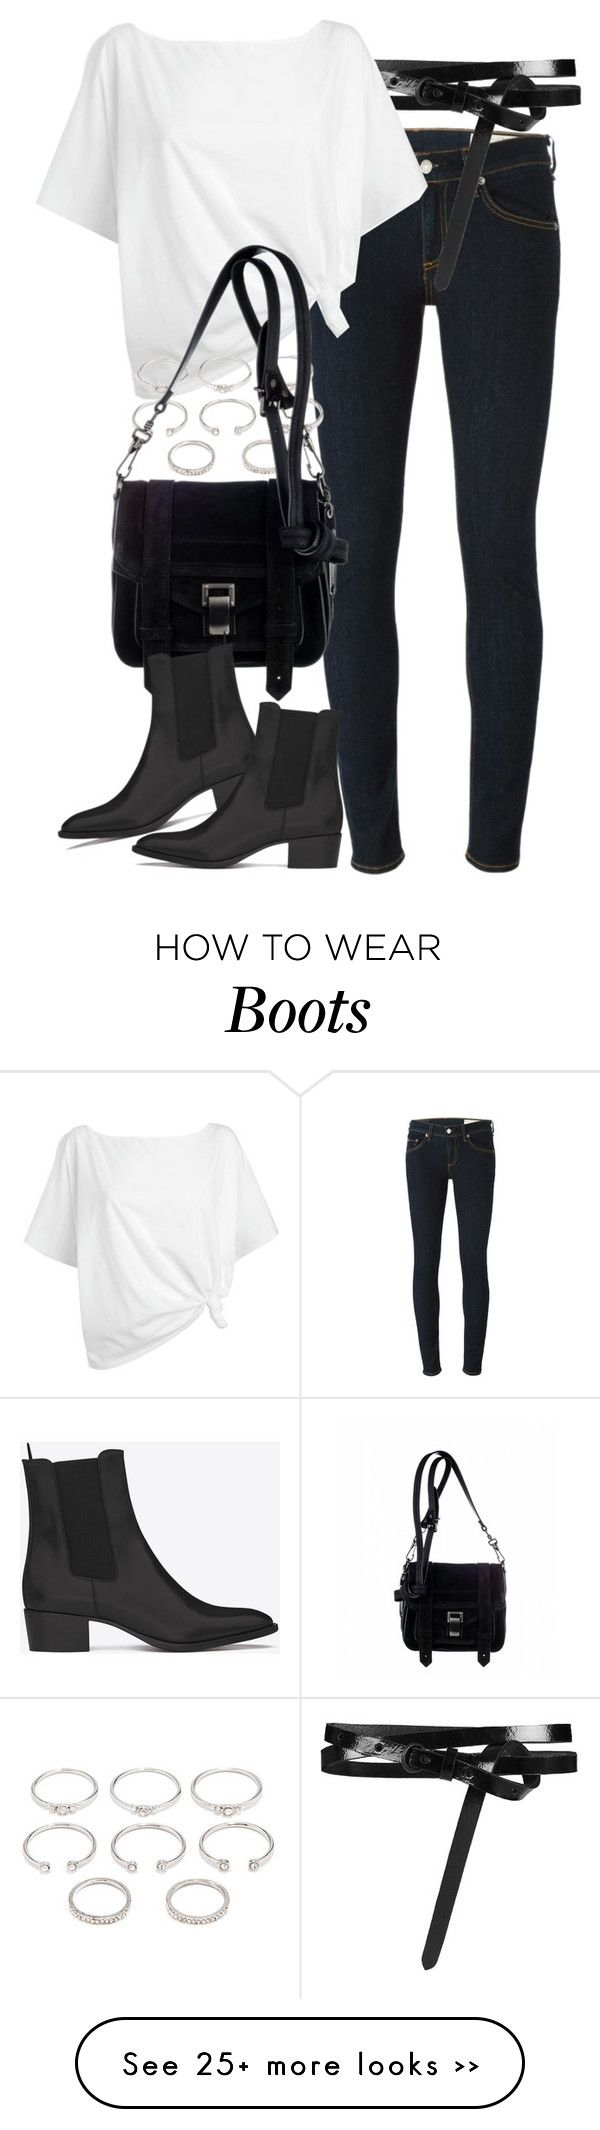 """""""Untitled #7026"""" by nikka-phillips on Polyvore featuring rag & bone, AllSaints, Red Herring, Forever 21, Proenza Schouler and Yves Saint Laurent"""